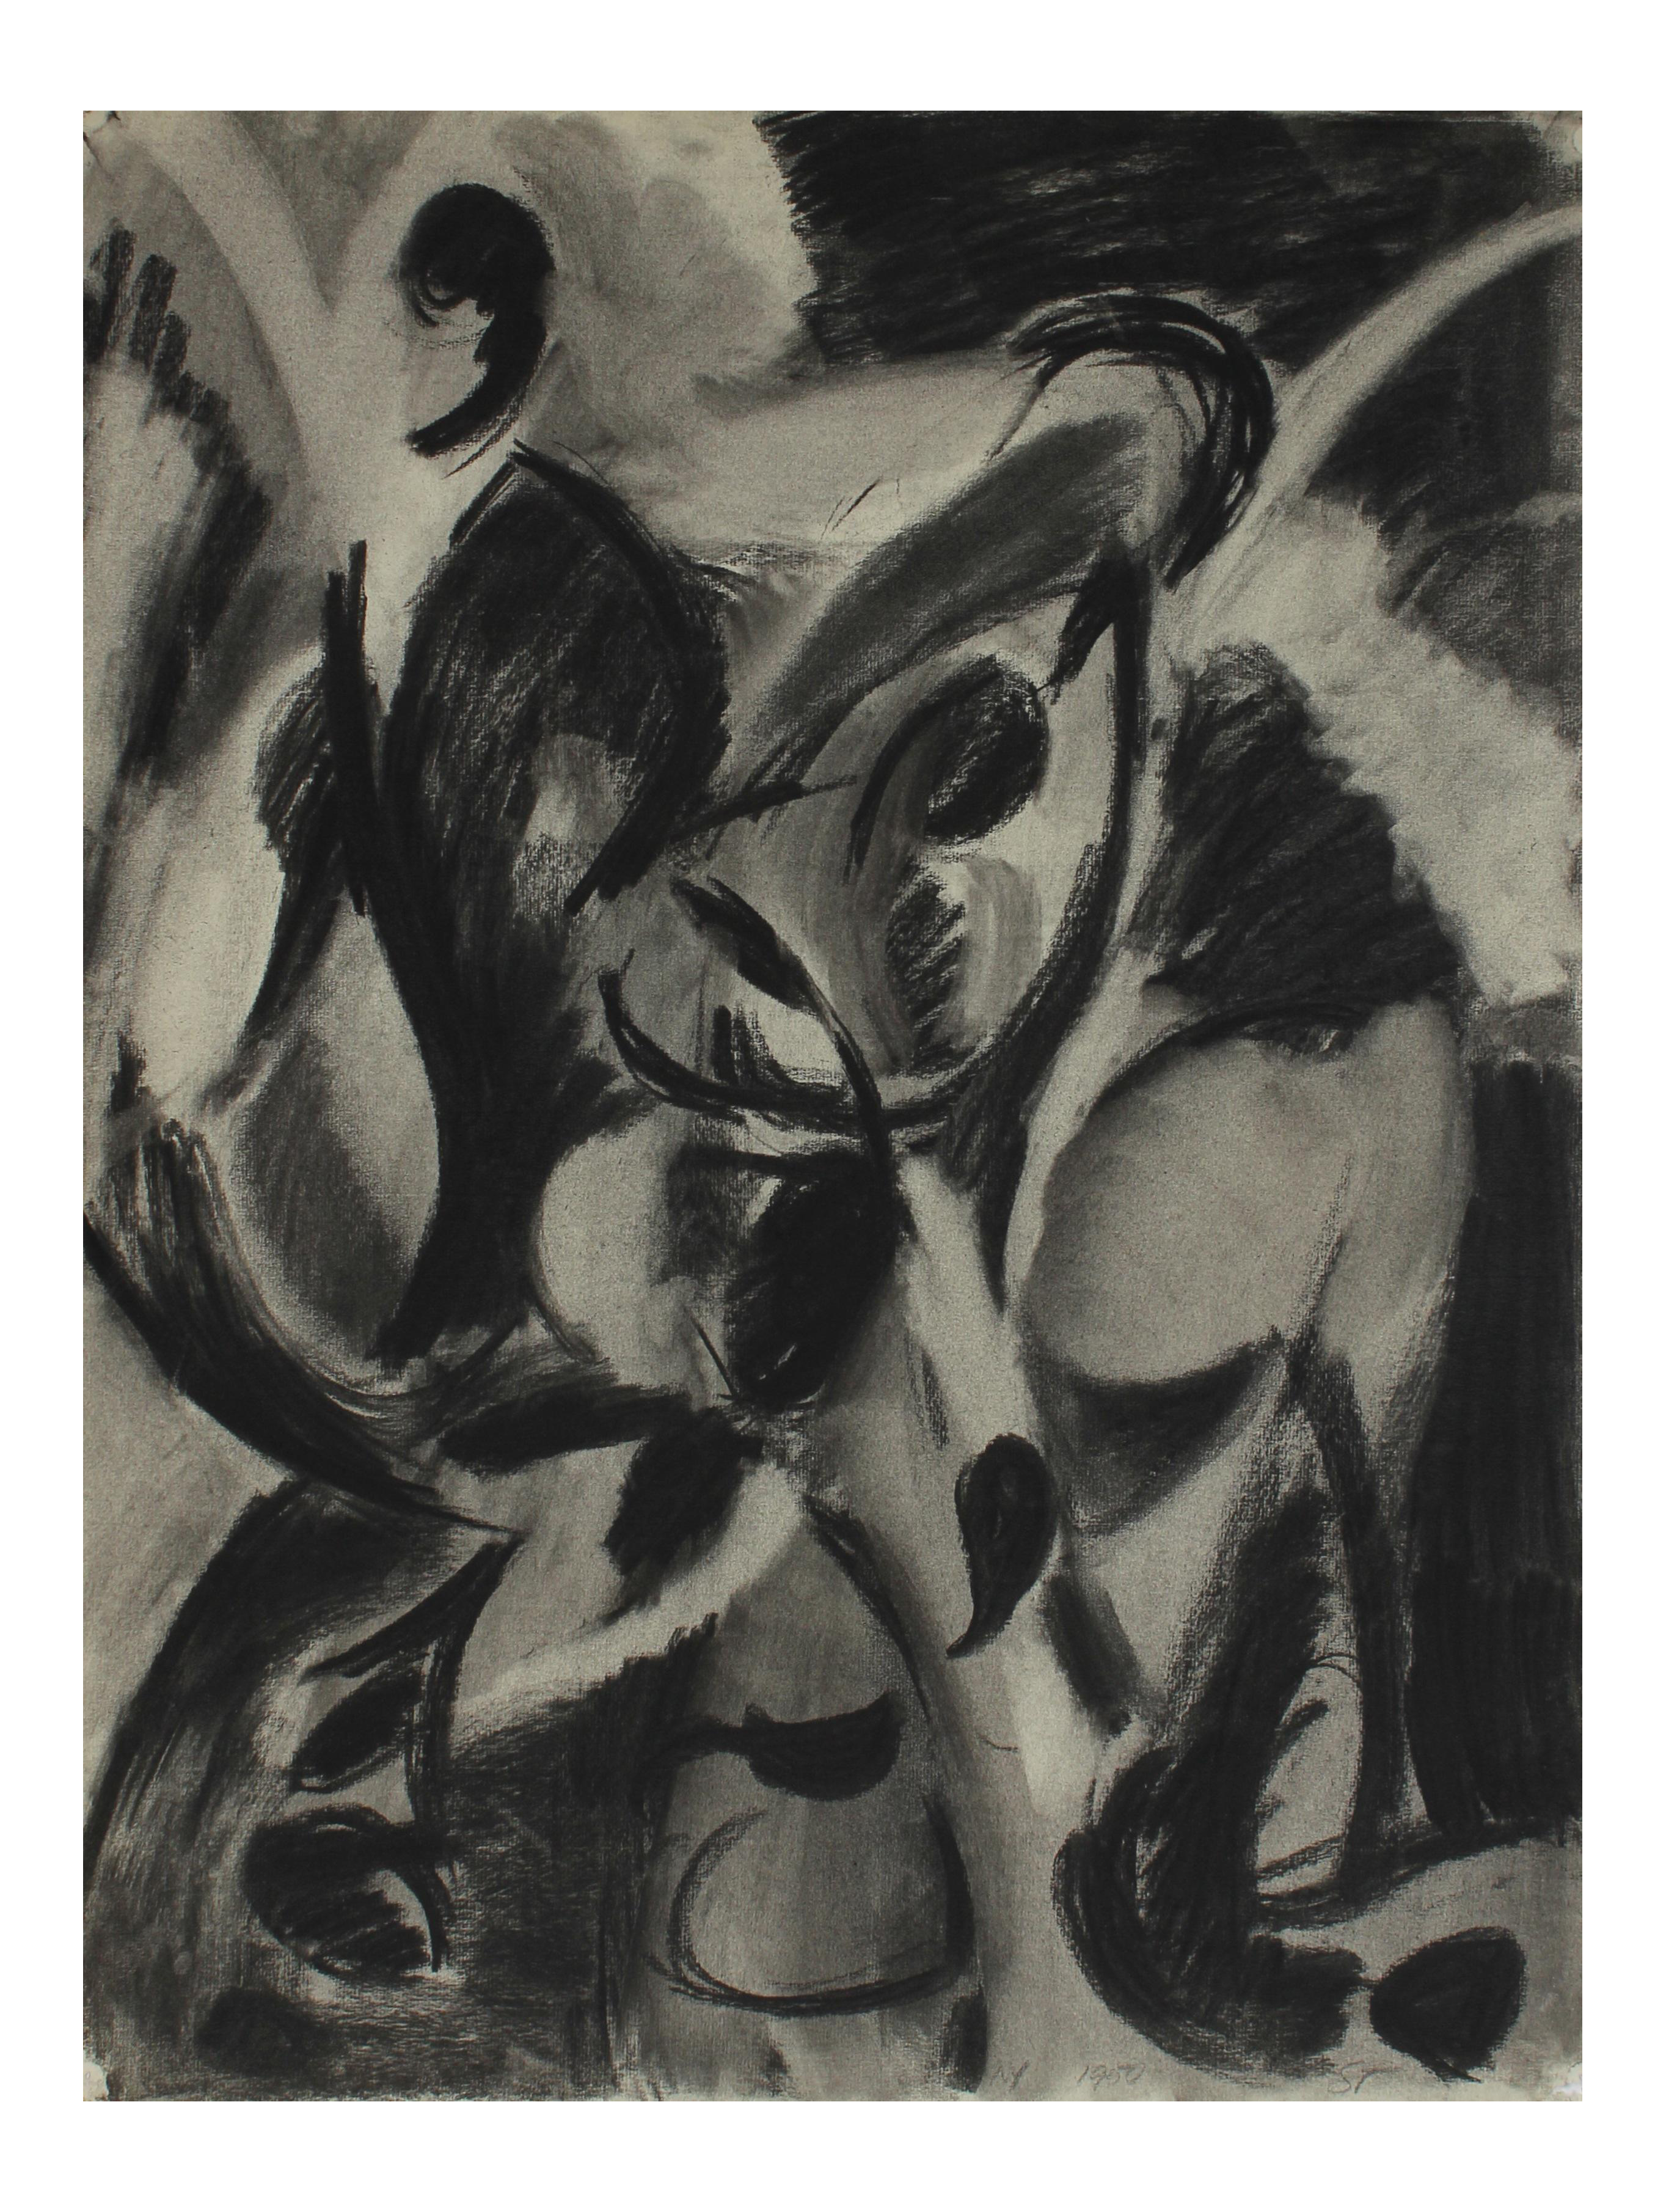 Acrylic drawing charcoal. Exceptional monochromatic abstract figures